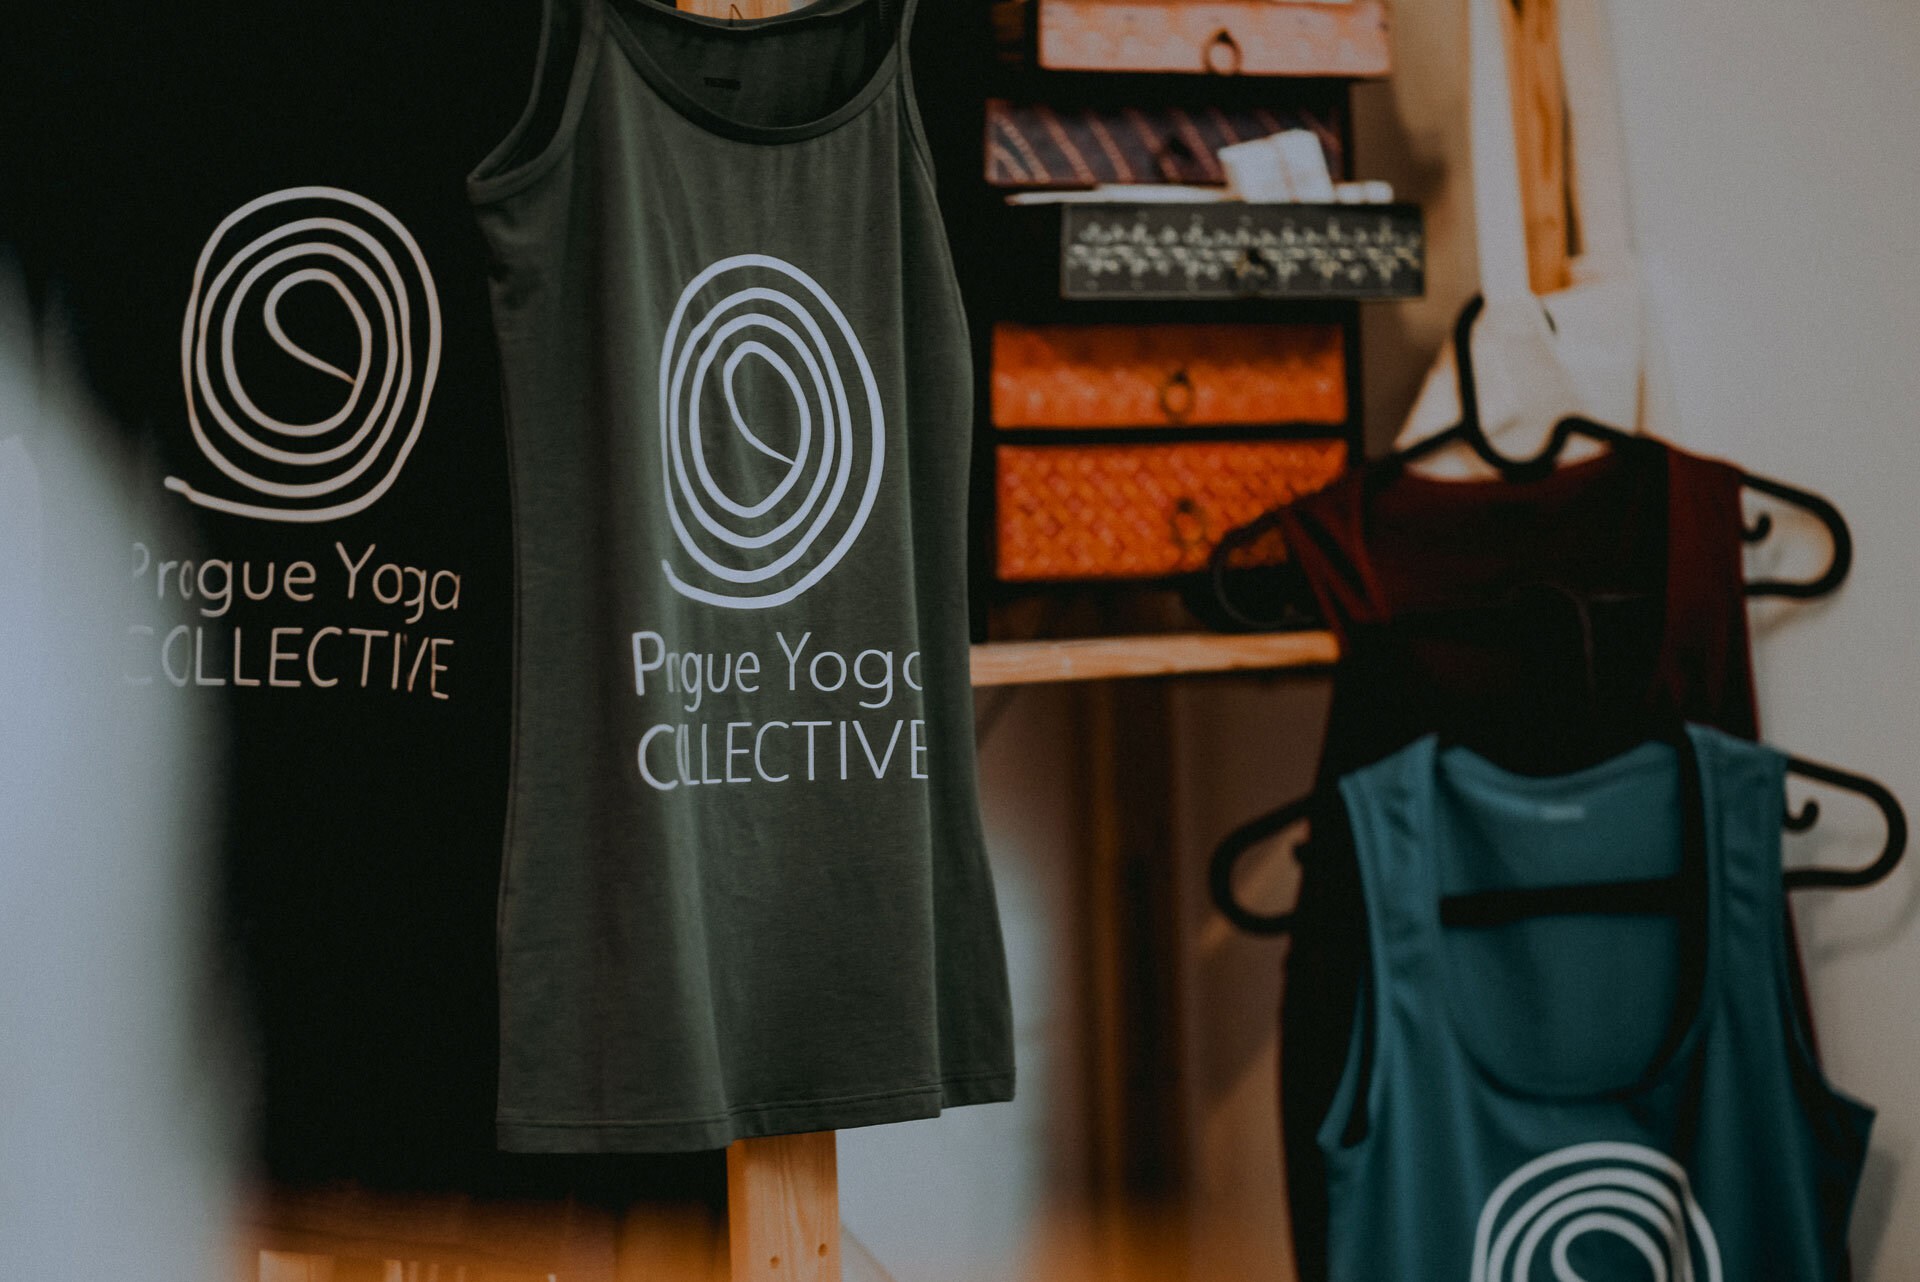 Prague_Yoga_Studio_Shirts.jpg